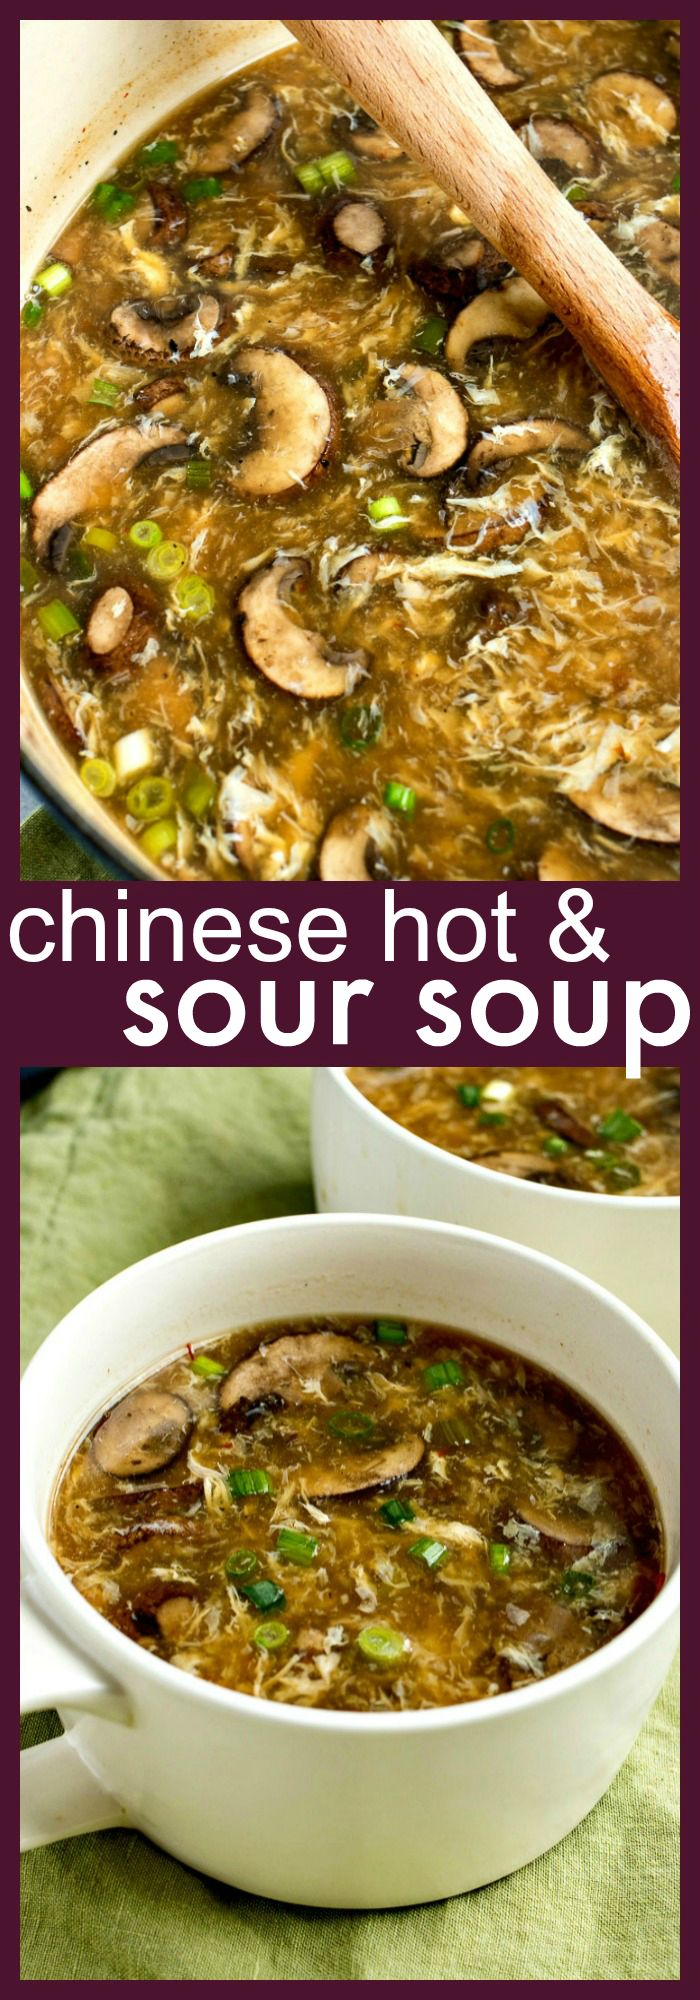 Mar 20, 2020 – Chinese Hot & Sour Soup – Comforting Chinese soup, loaded with pork and mushrooms and spiced with garlic …